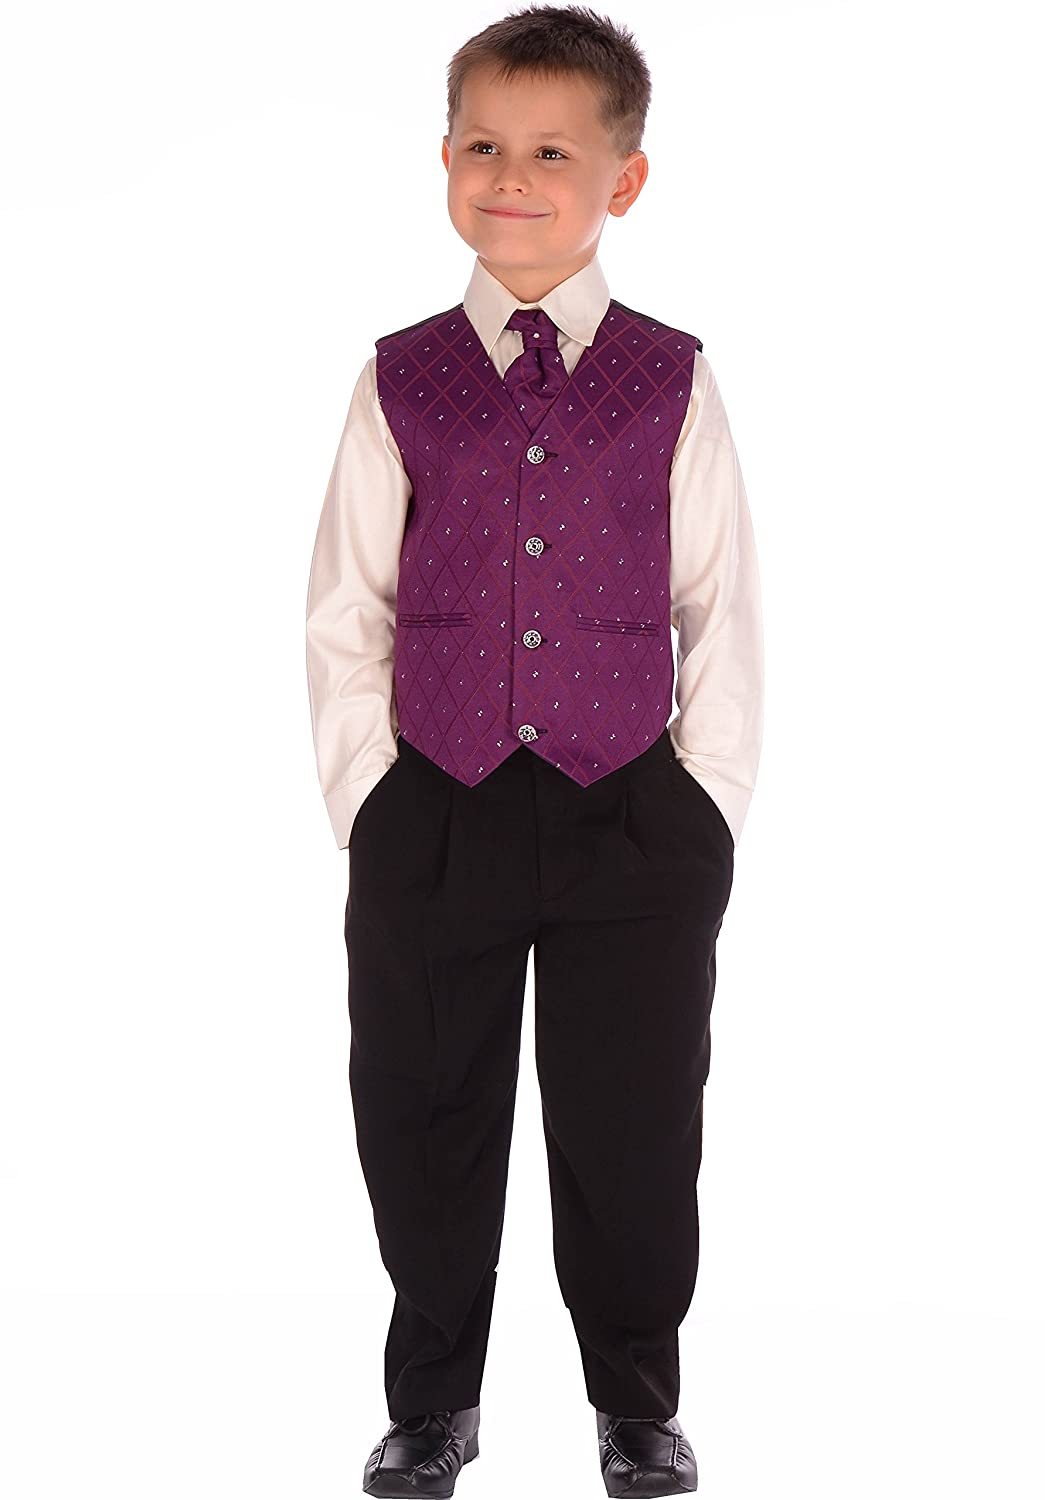 4-Piece Boys Suits Black and Purple Suit Wedding Formal Pageboy Usher Age 0-3 month to 14-15 years